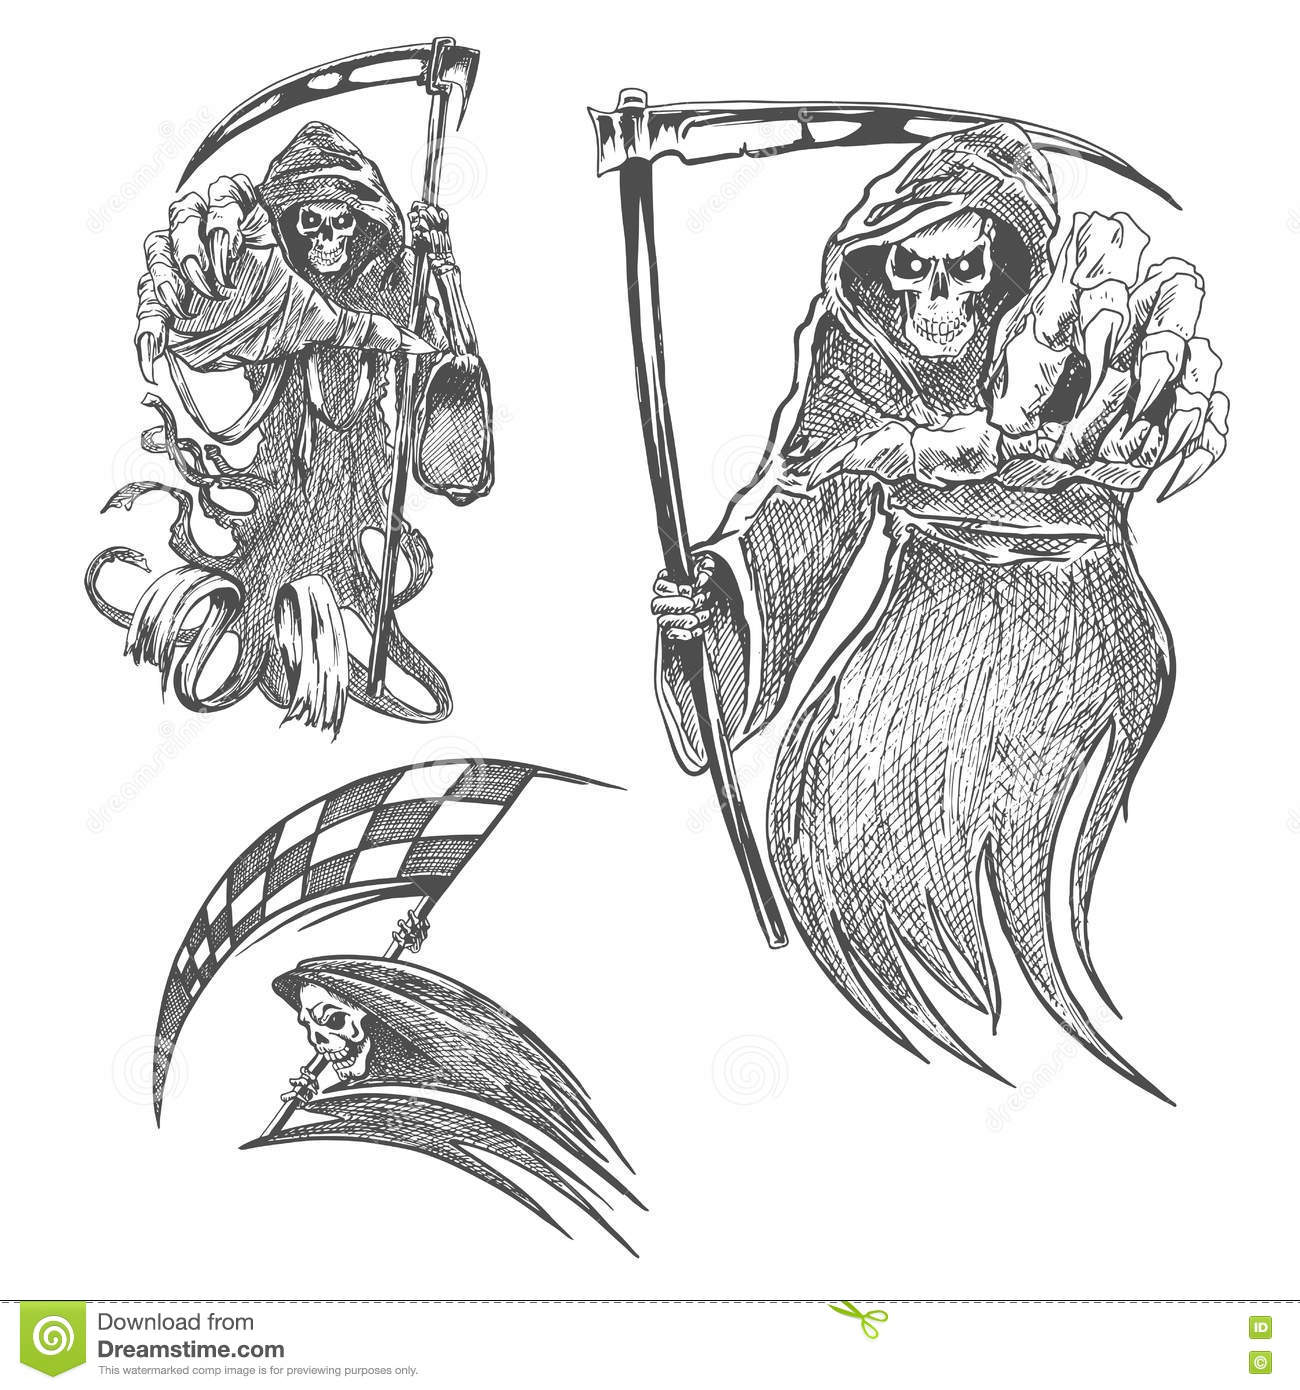 Death with scythe pencil sketch halloween vector icon gothic mortal character sketching for tattoo decoration